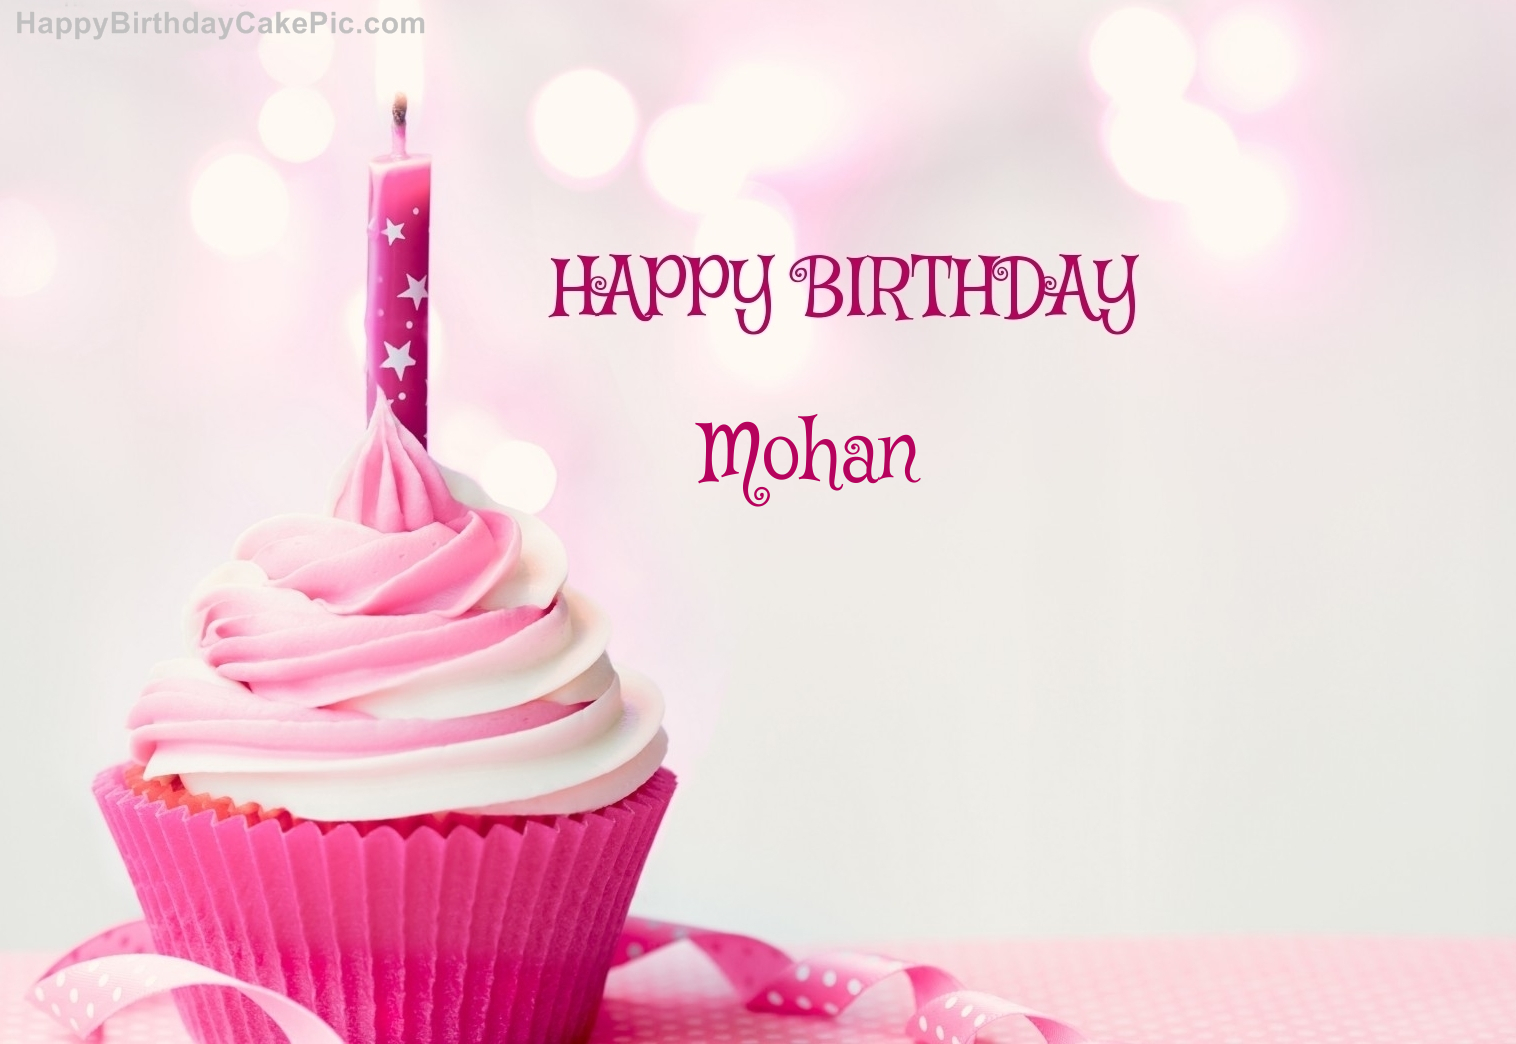 Cake Images With Name Mohan : Happy Birthday Cupcake Candle Pink Cake For Mohan